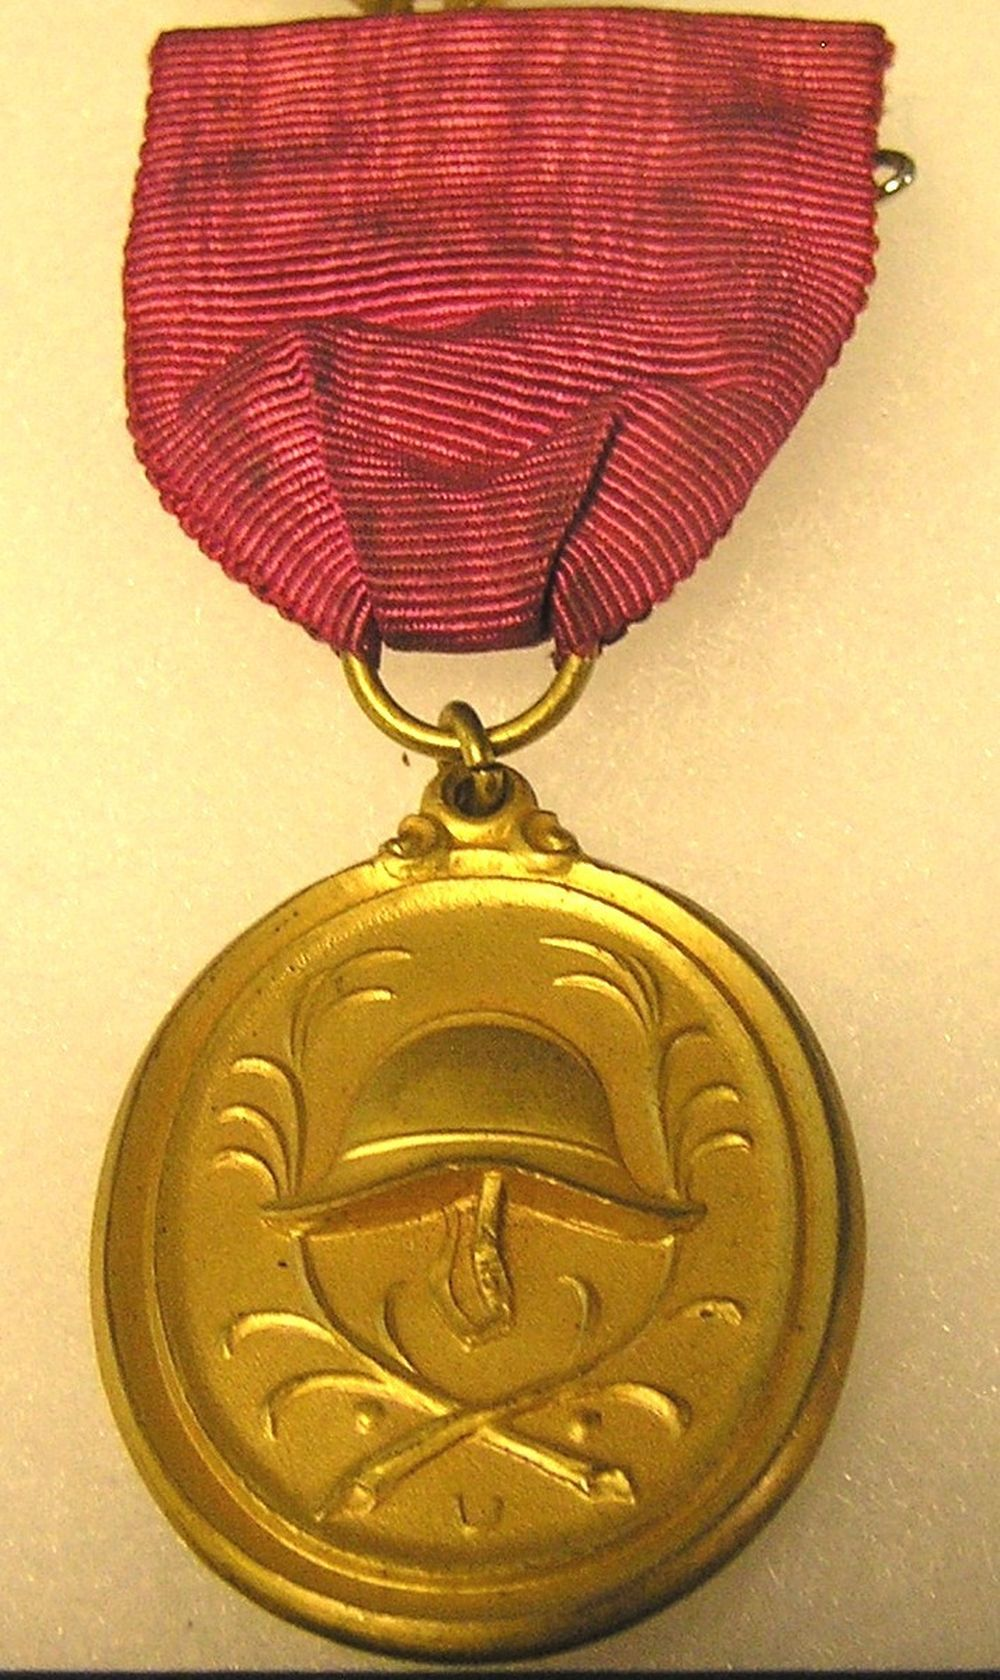 WWII NAZI GERMANY GOLD BADGE AND RIBBON